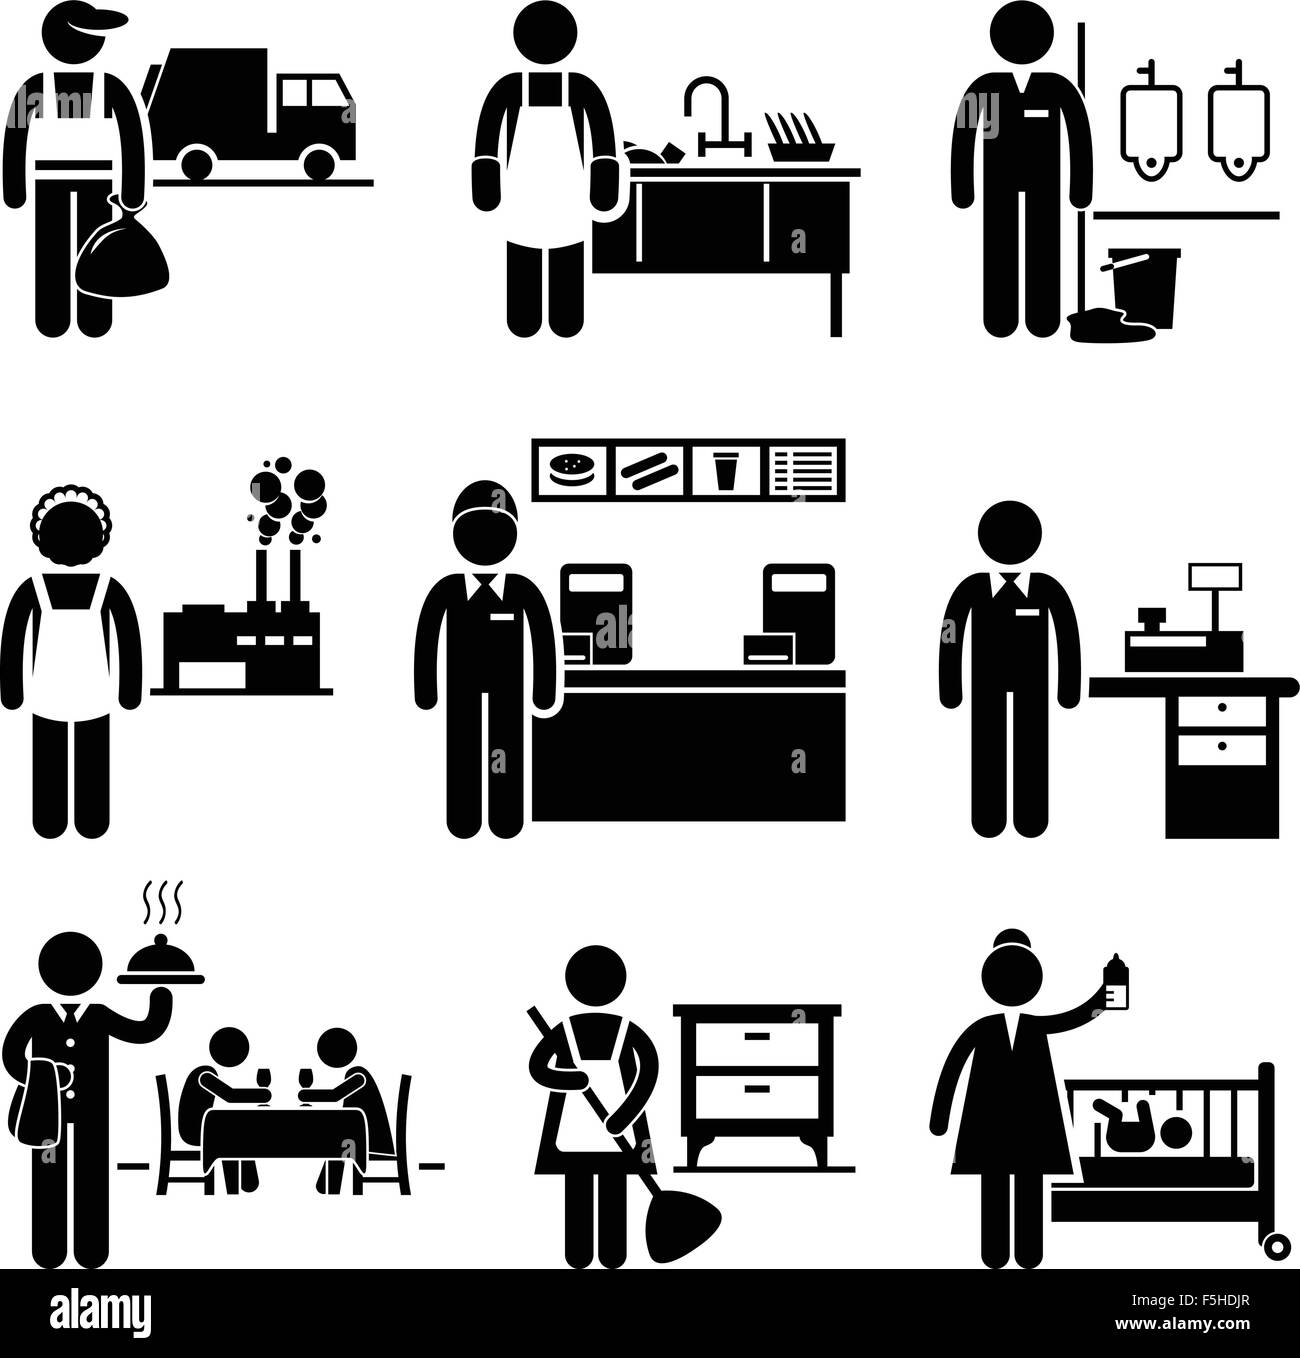 Low Income Jobs Occupations Careers - Garbage Man, Dishwasher, Janitor, Factory Worker, Fast Food Server, Cashier, - Stock Image